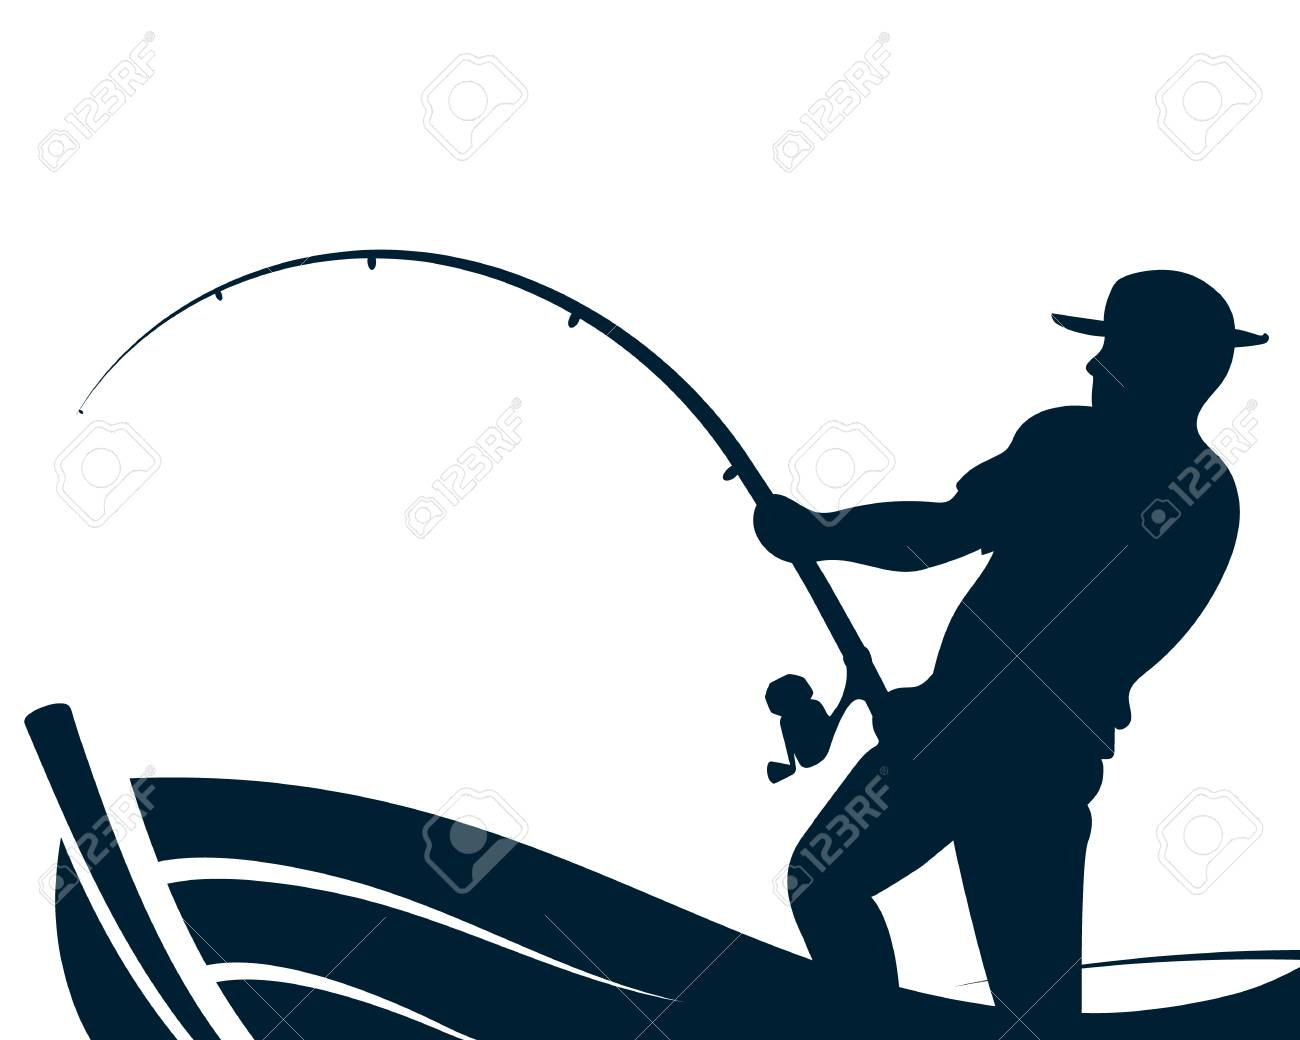 Fisherman with a fishing rod in a boat silhouette - 102175145